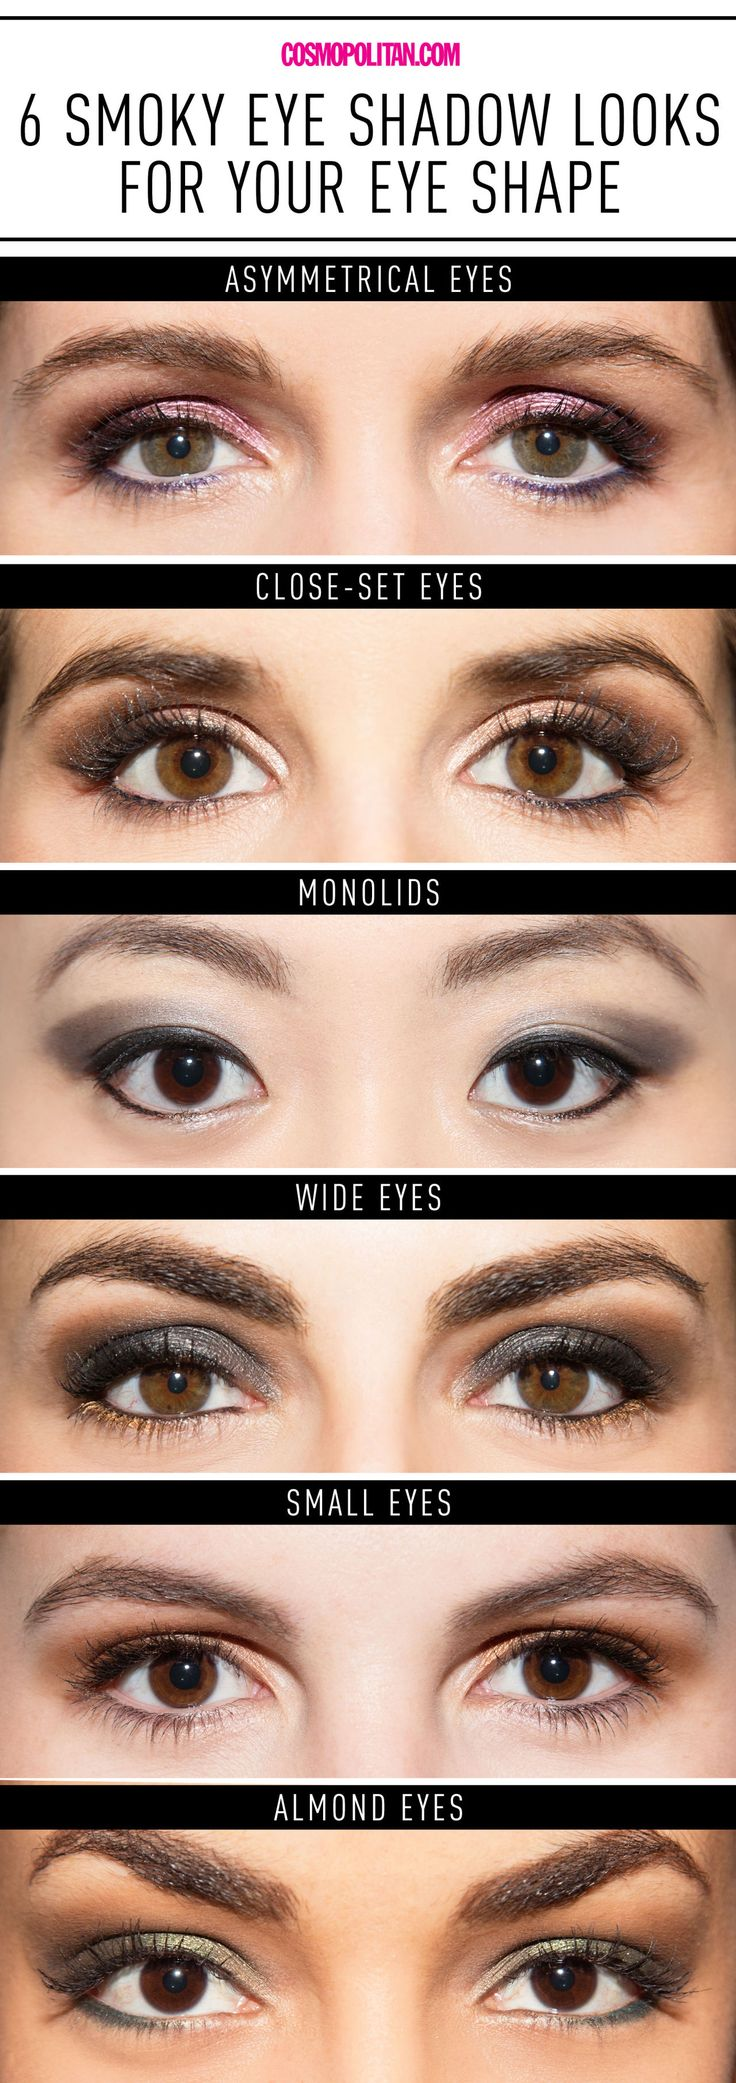 Best Eye Makeup Tips And Tricks For Small Eyes: 25+ Best Ideas About Almond Eye Makeup On Pinterest